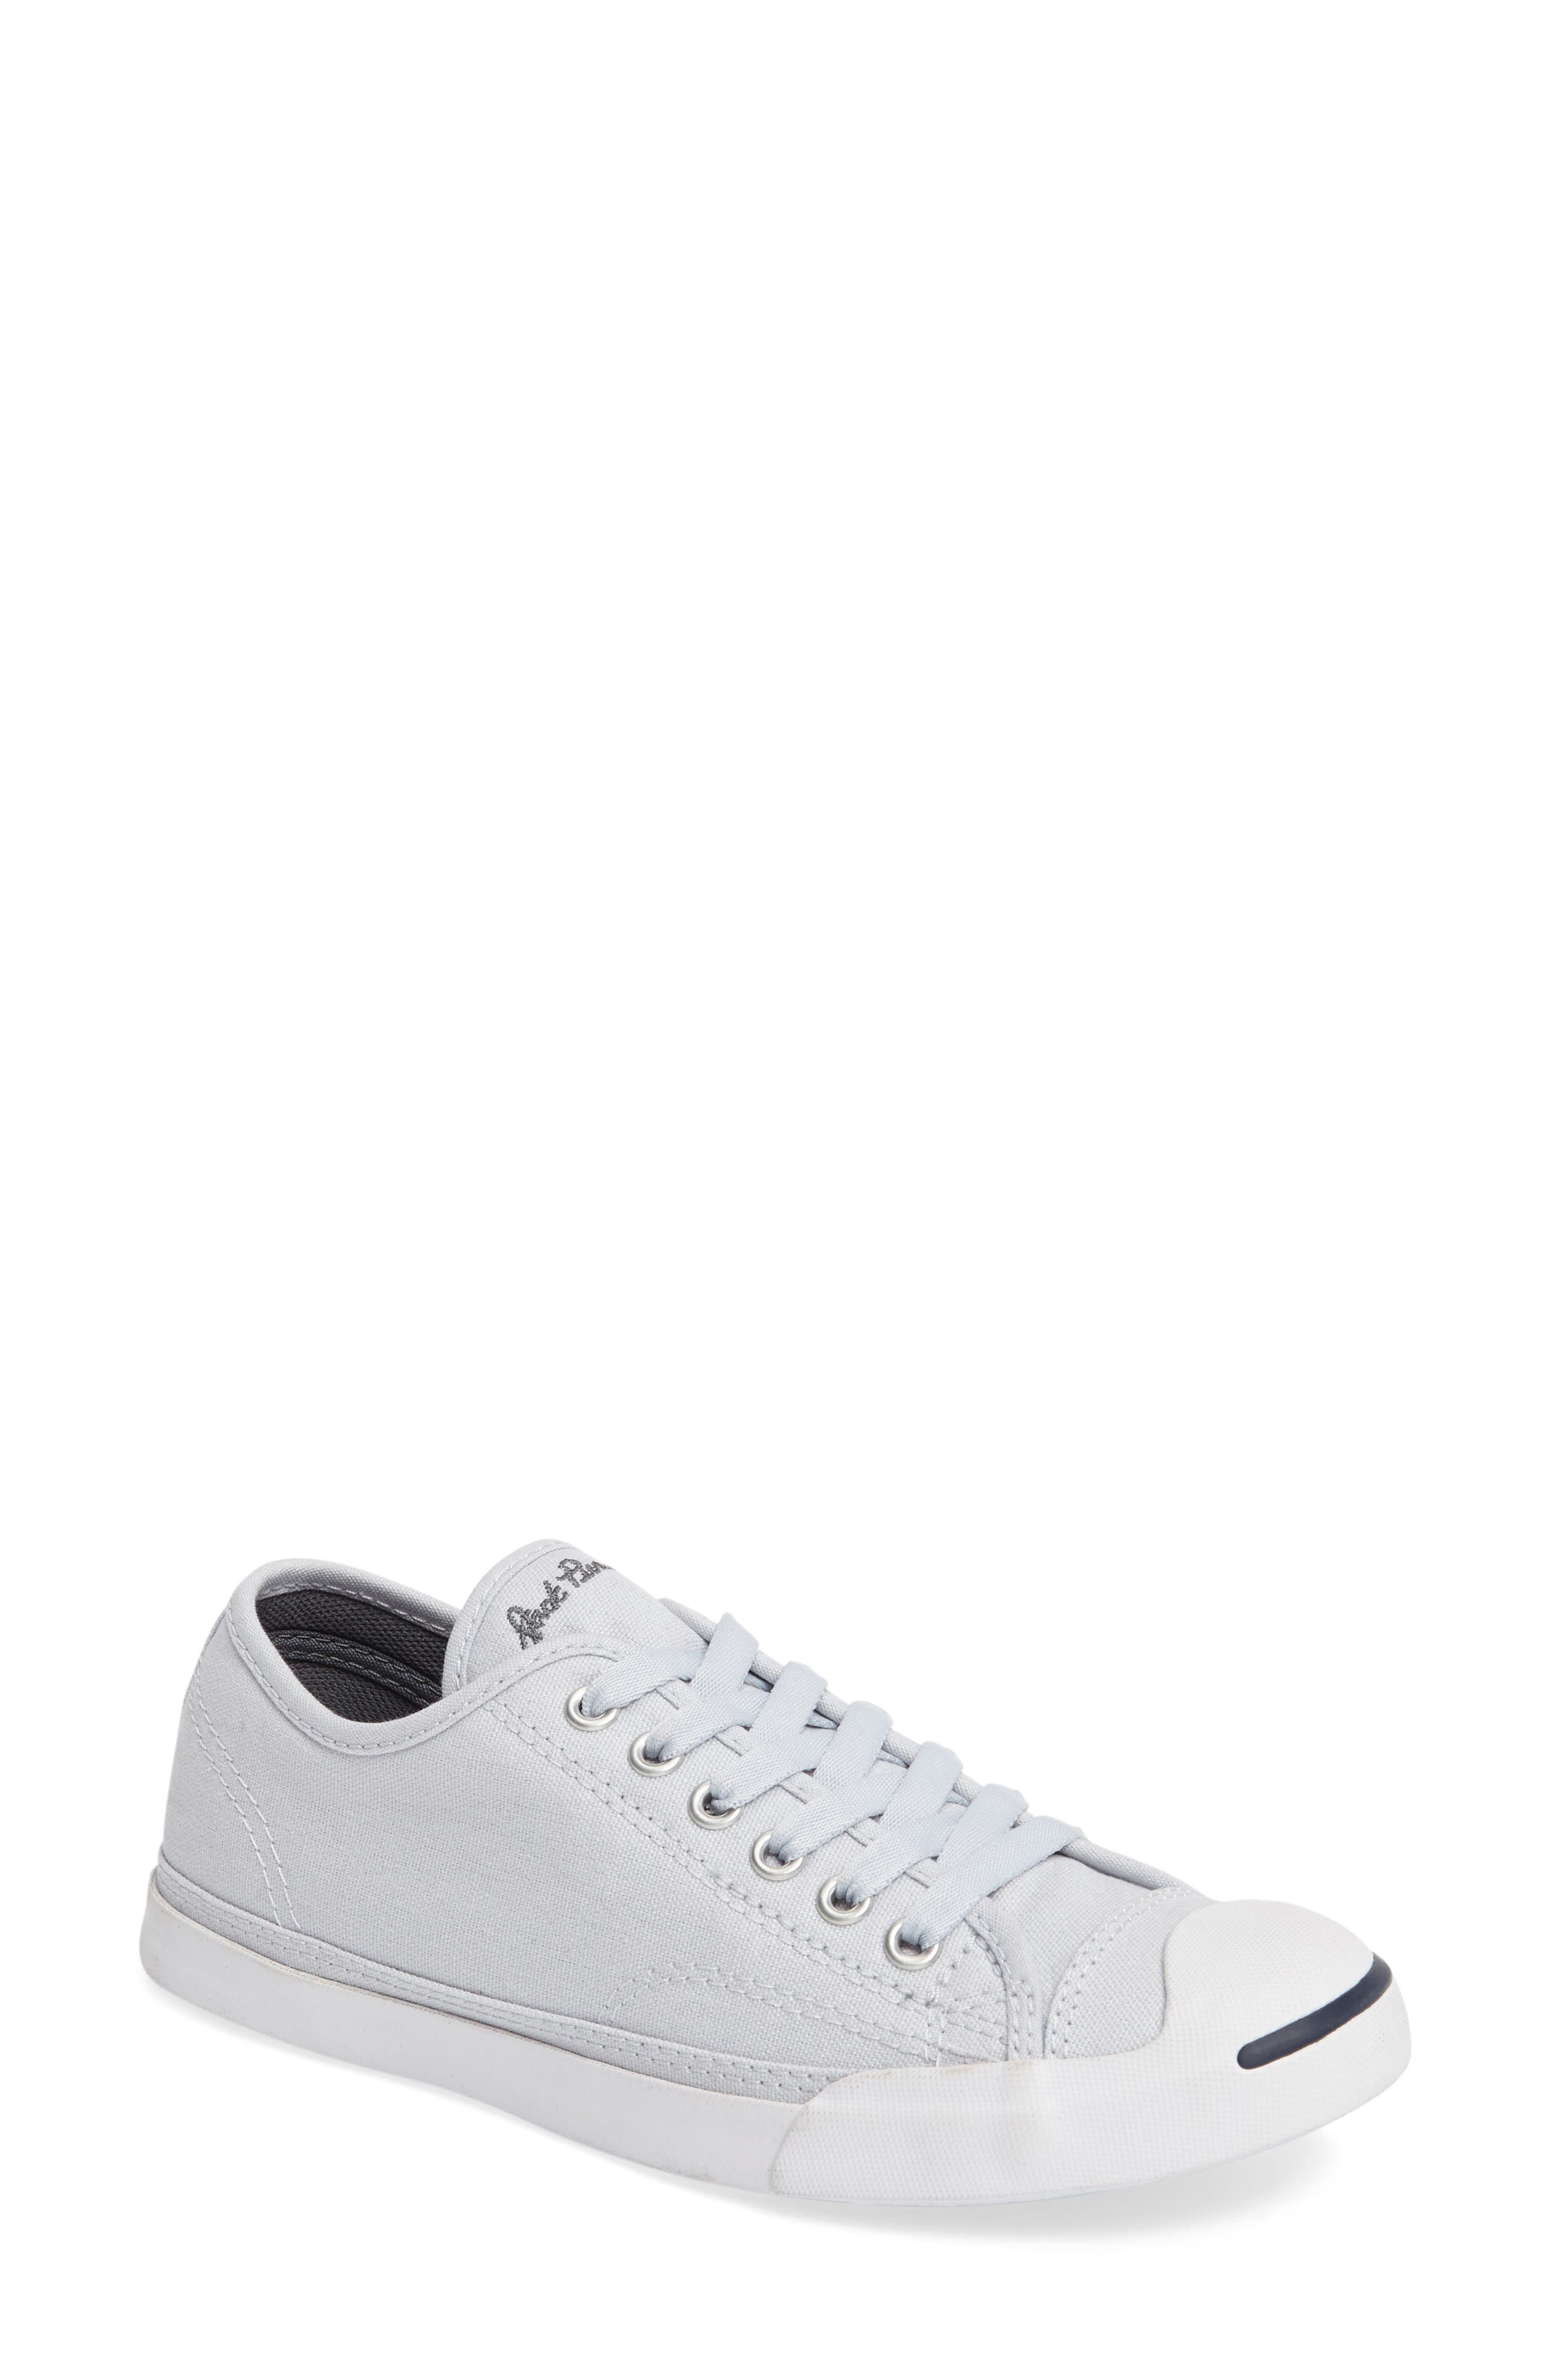 Jack Purcell Signature Ox Low Top Sneaker,                         Main,                         color,